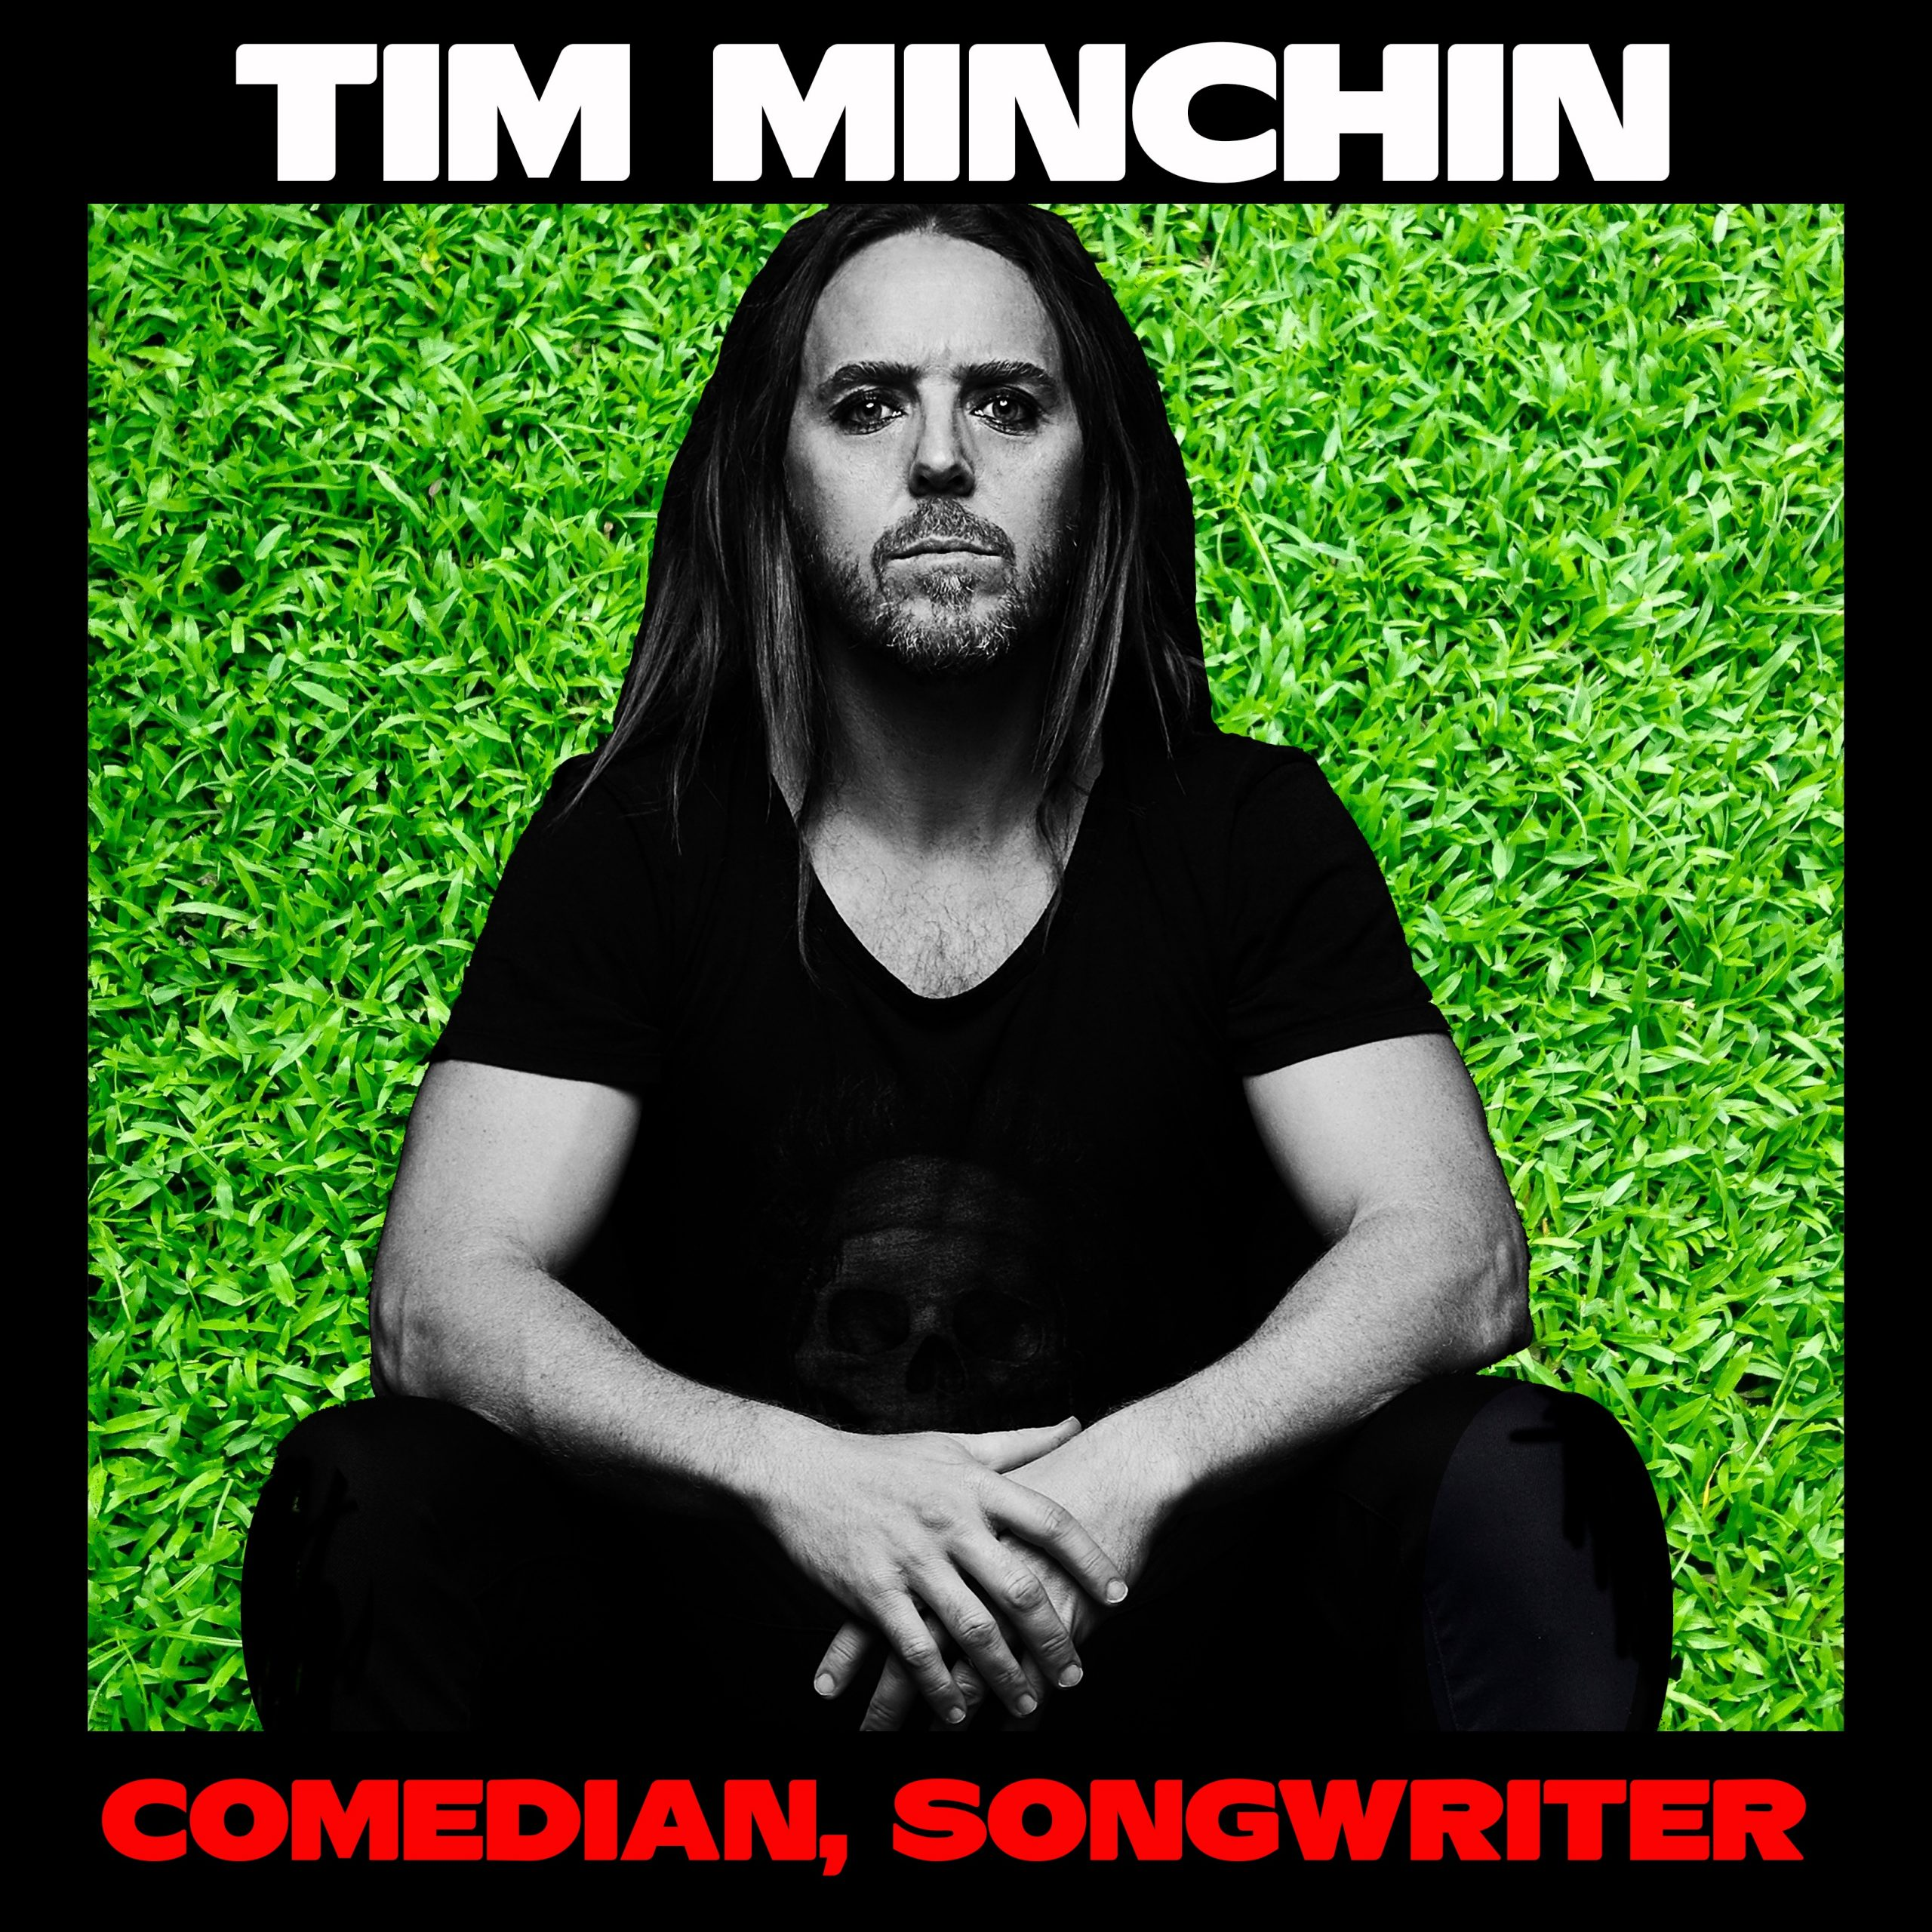 Tim Minchin, Comedian, Songwriter